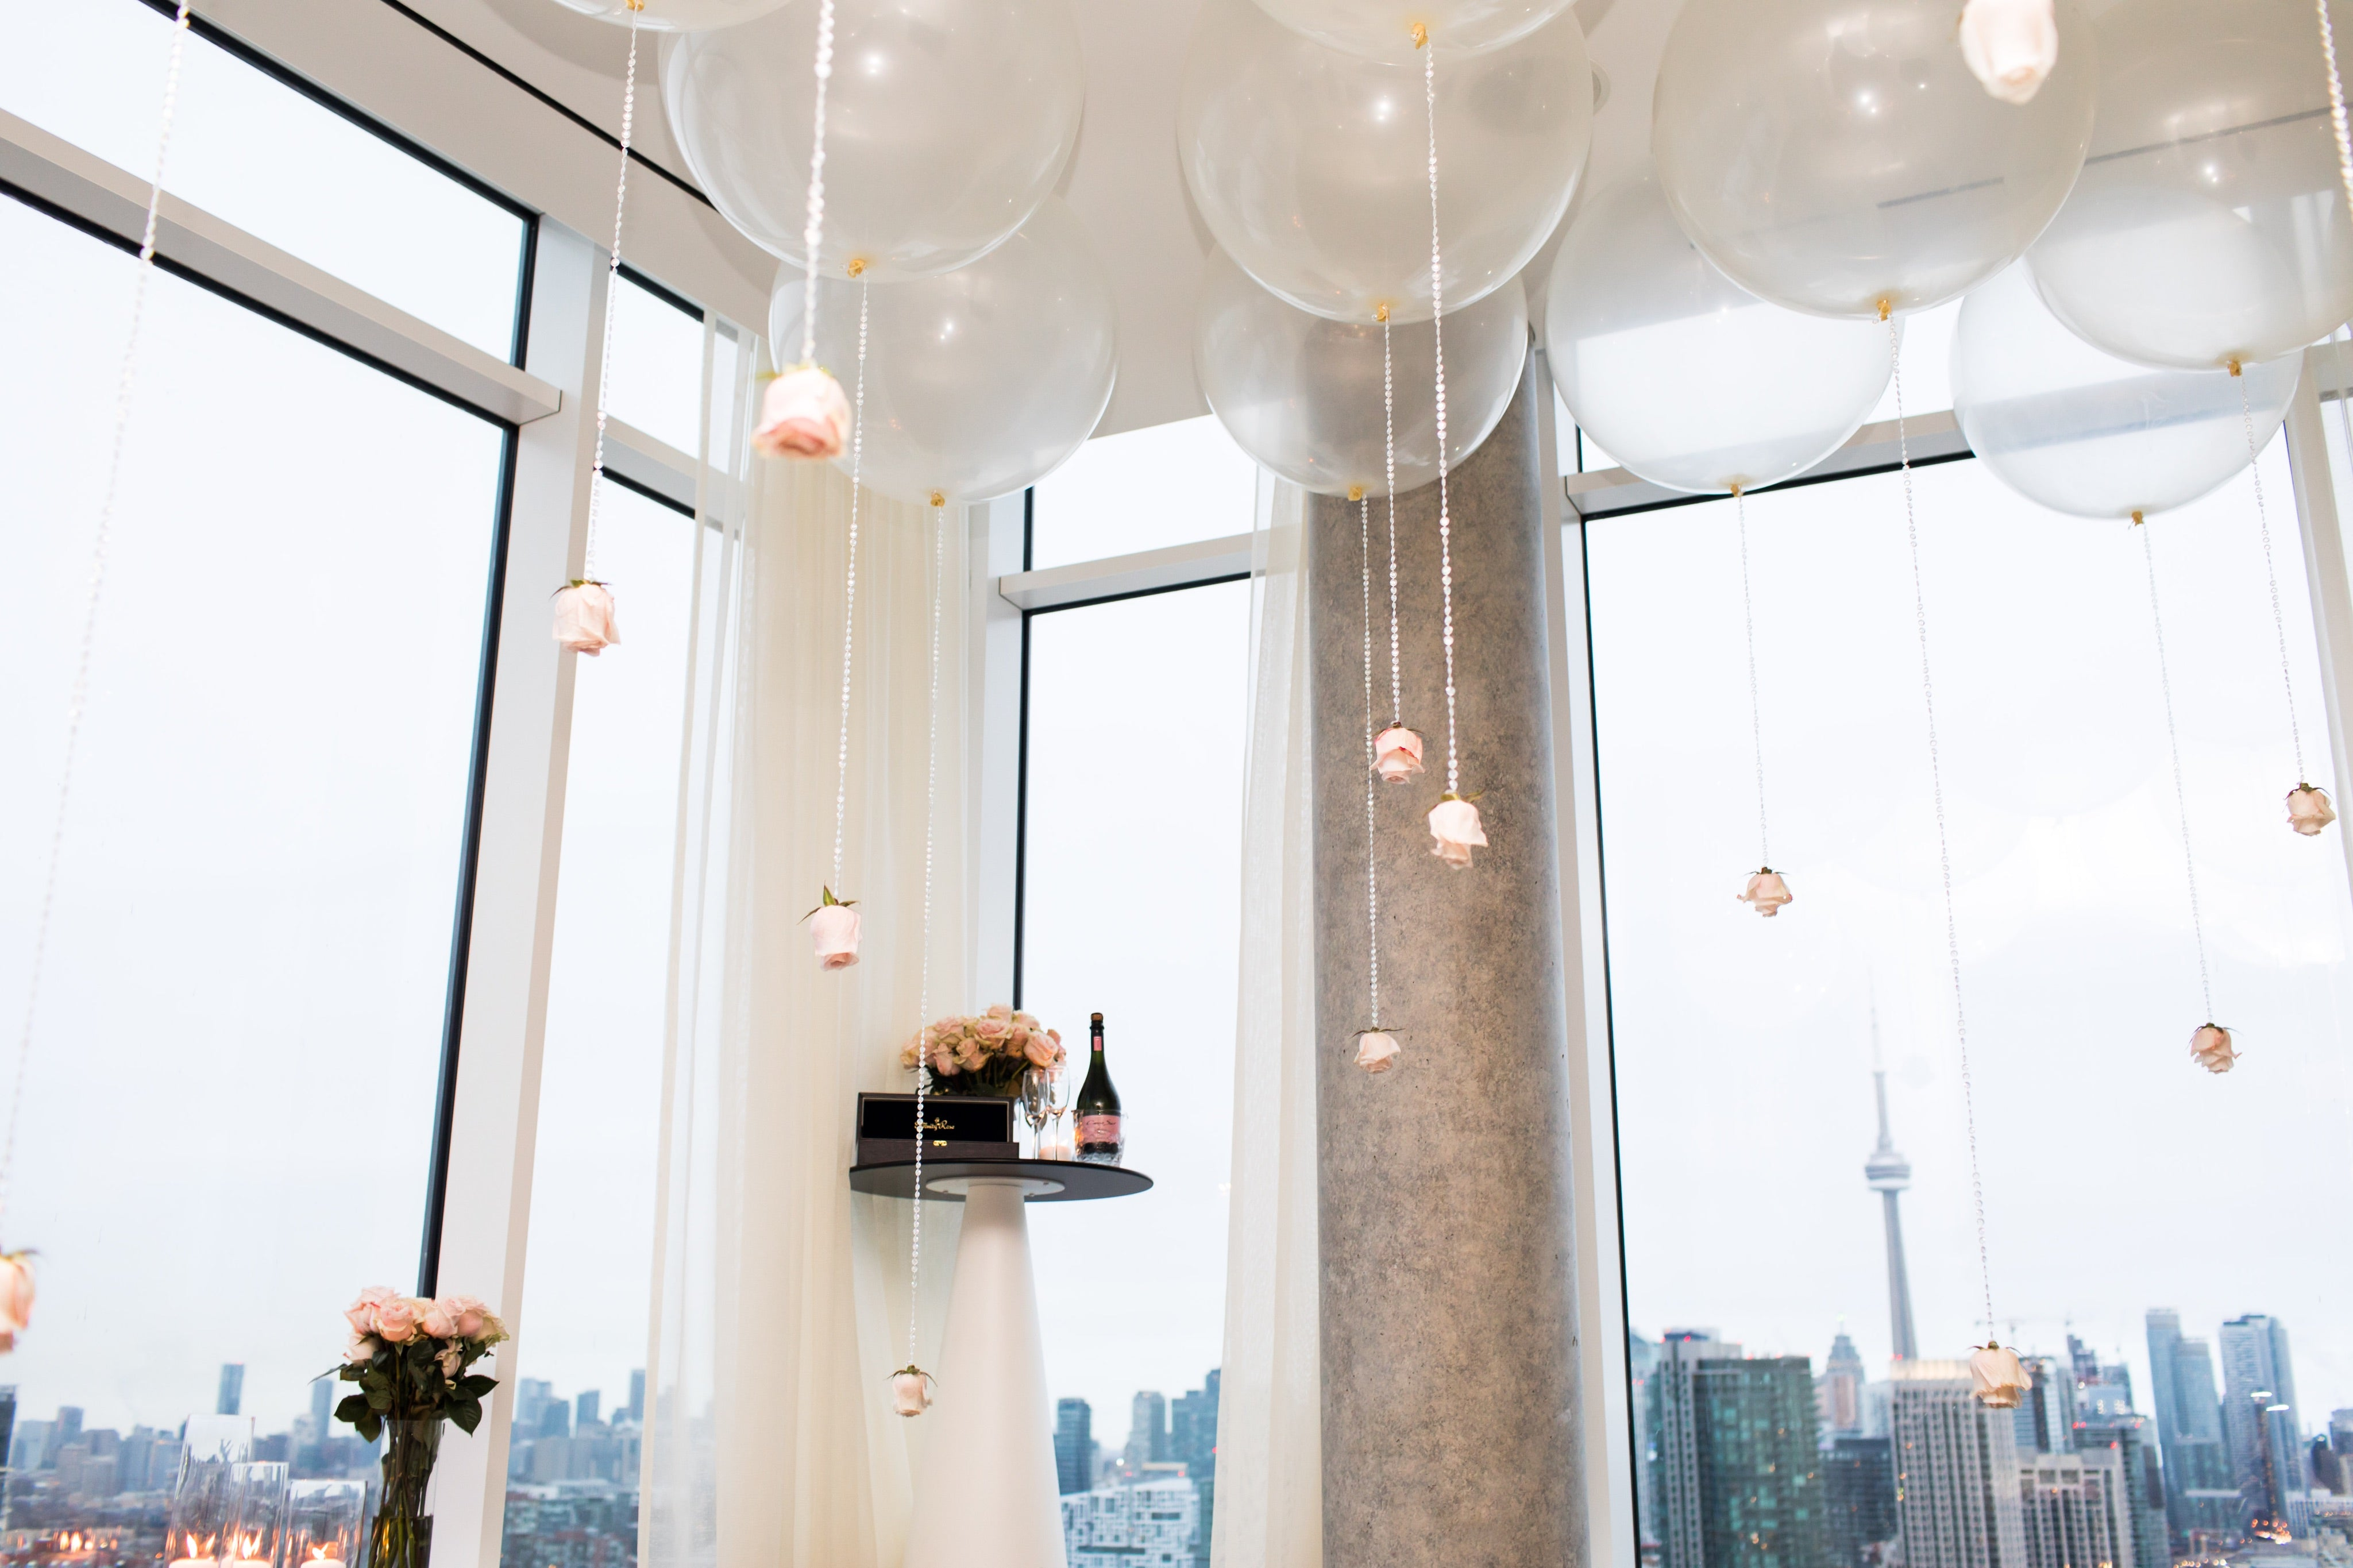 Proposal Balloon Ceiling